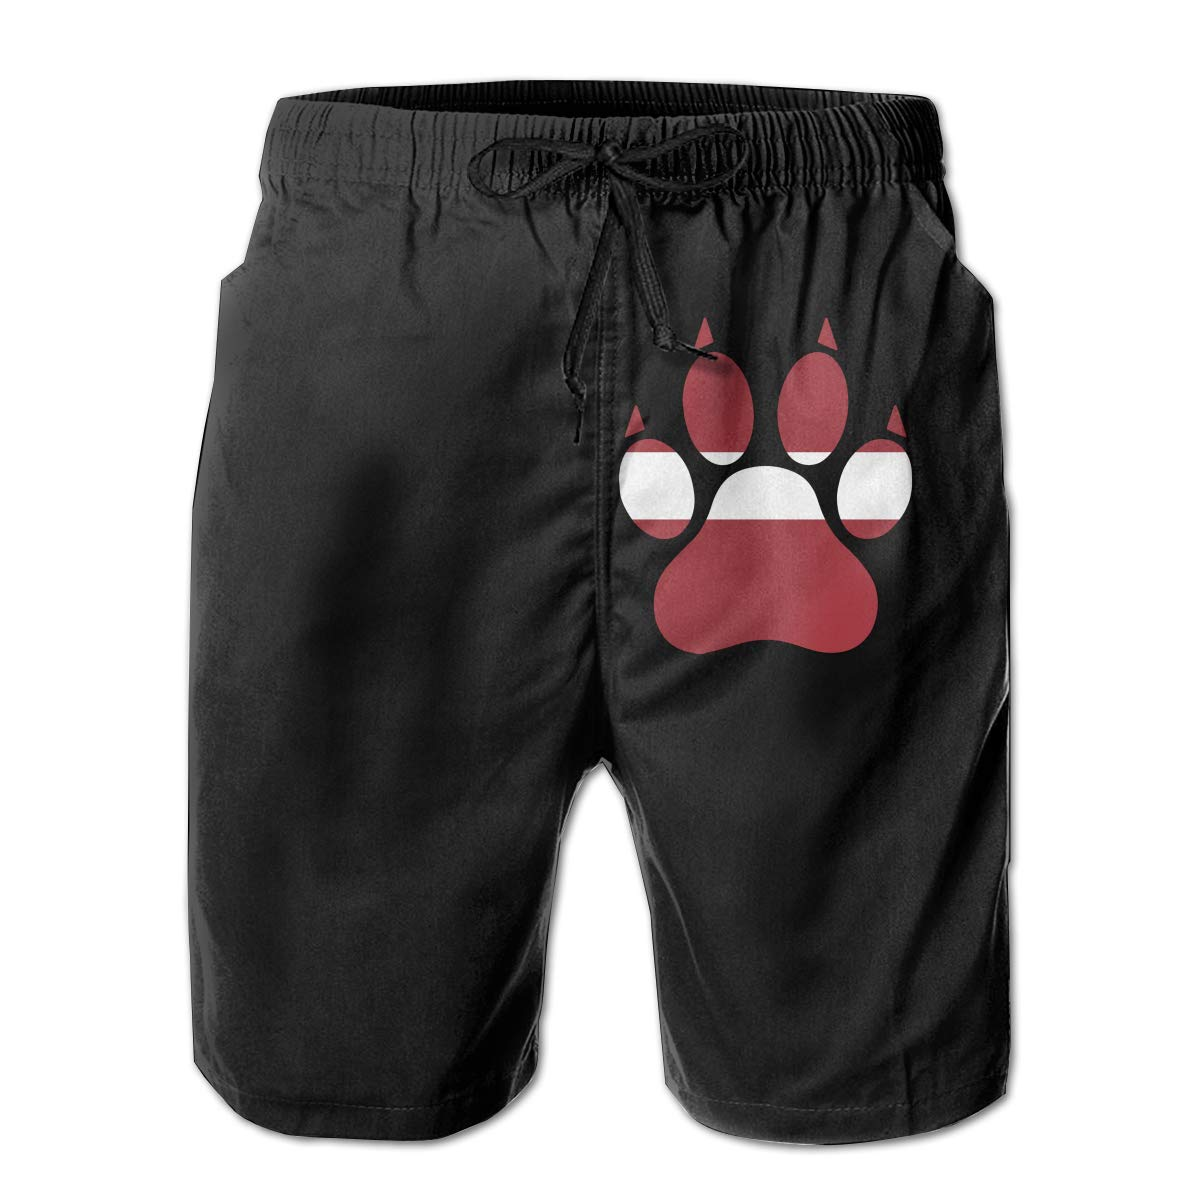 3D Printed Board Shorts with Pockets Mens 100/% Polyester Latvia Dog Paw Swim Trunks